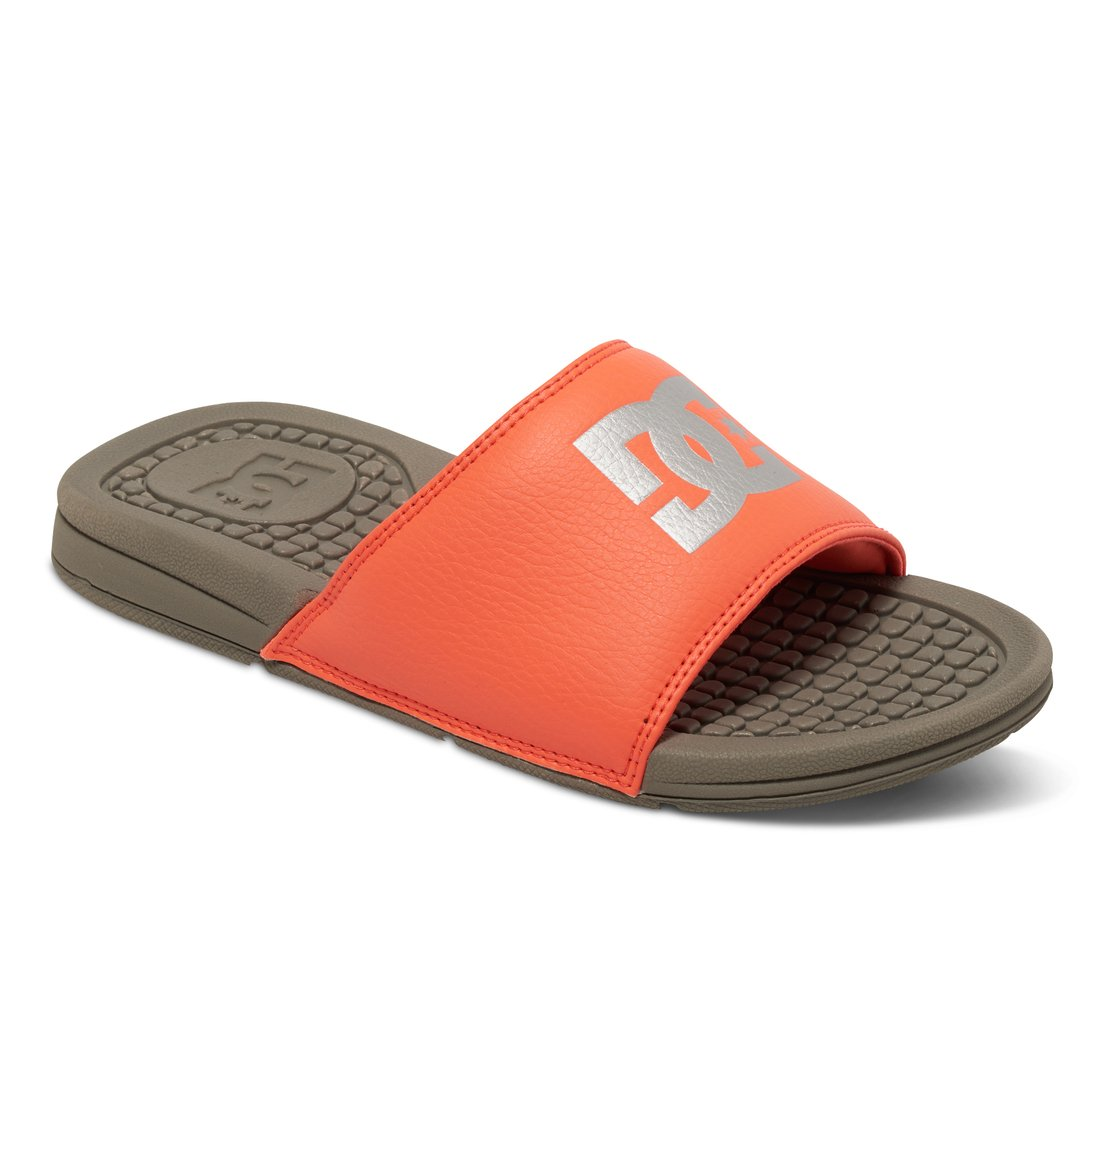 Quiksilver womens sandals